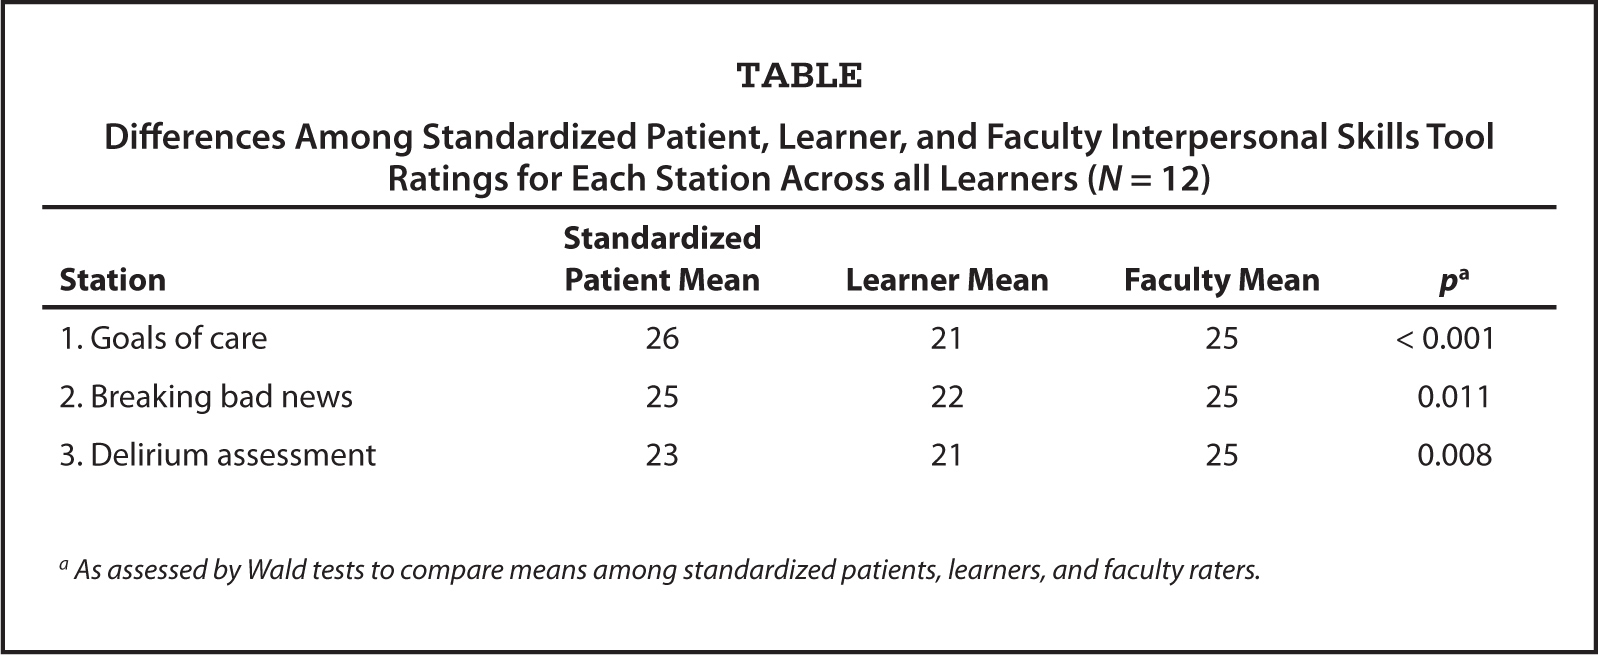 Differences Among Standardized Patient, Learner, and Faculty Interpersonal Skills Tool Ratings for Each Station Across all Learners (N = 12)